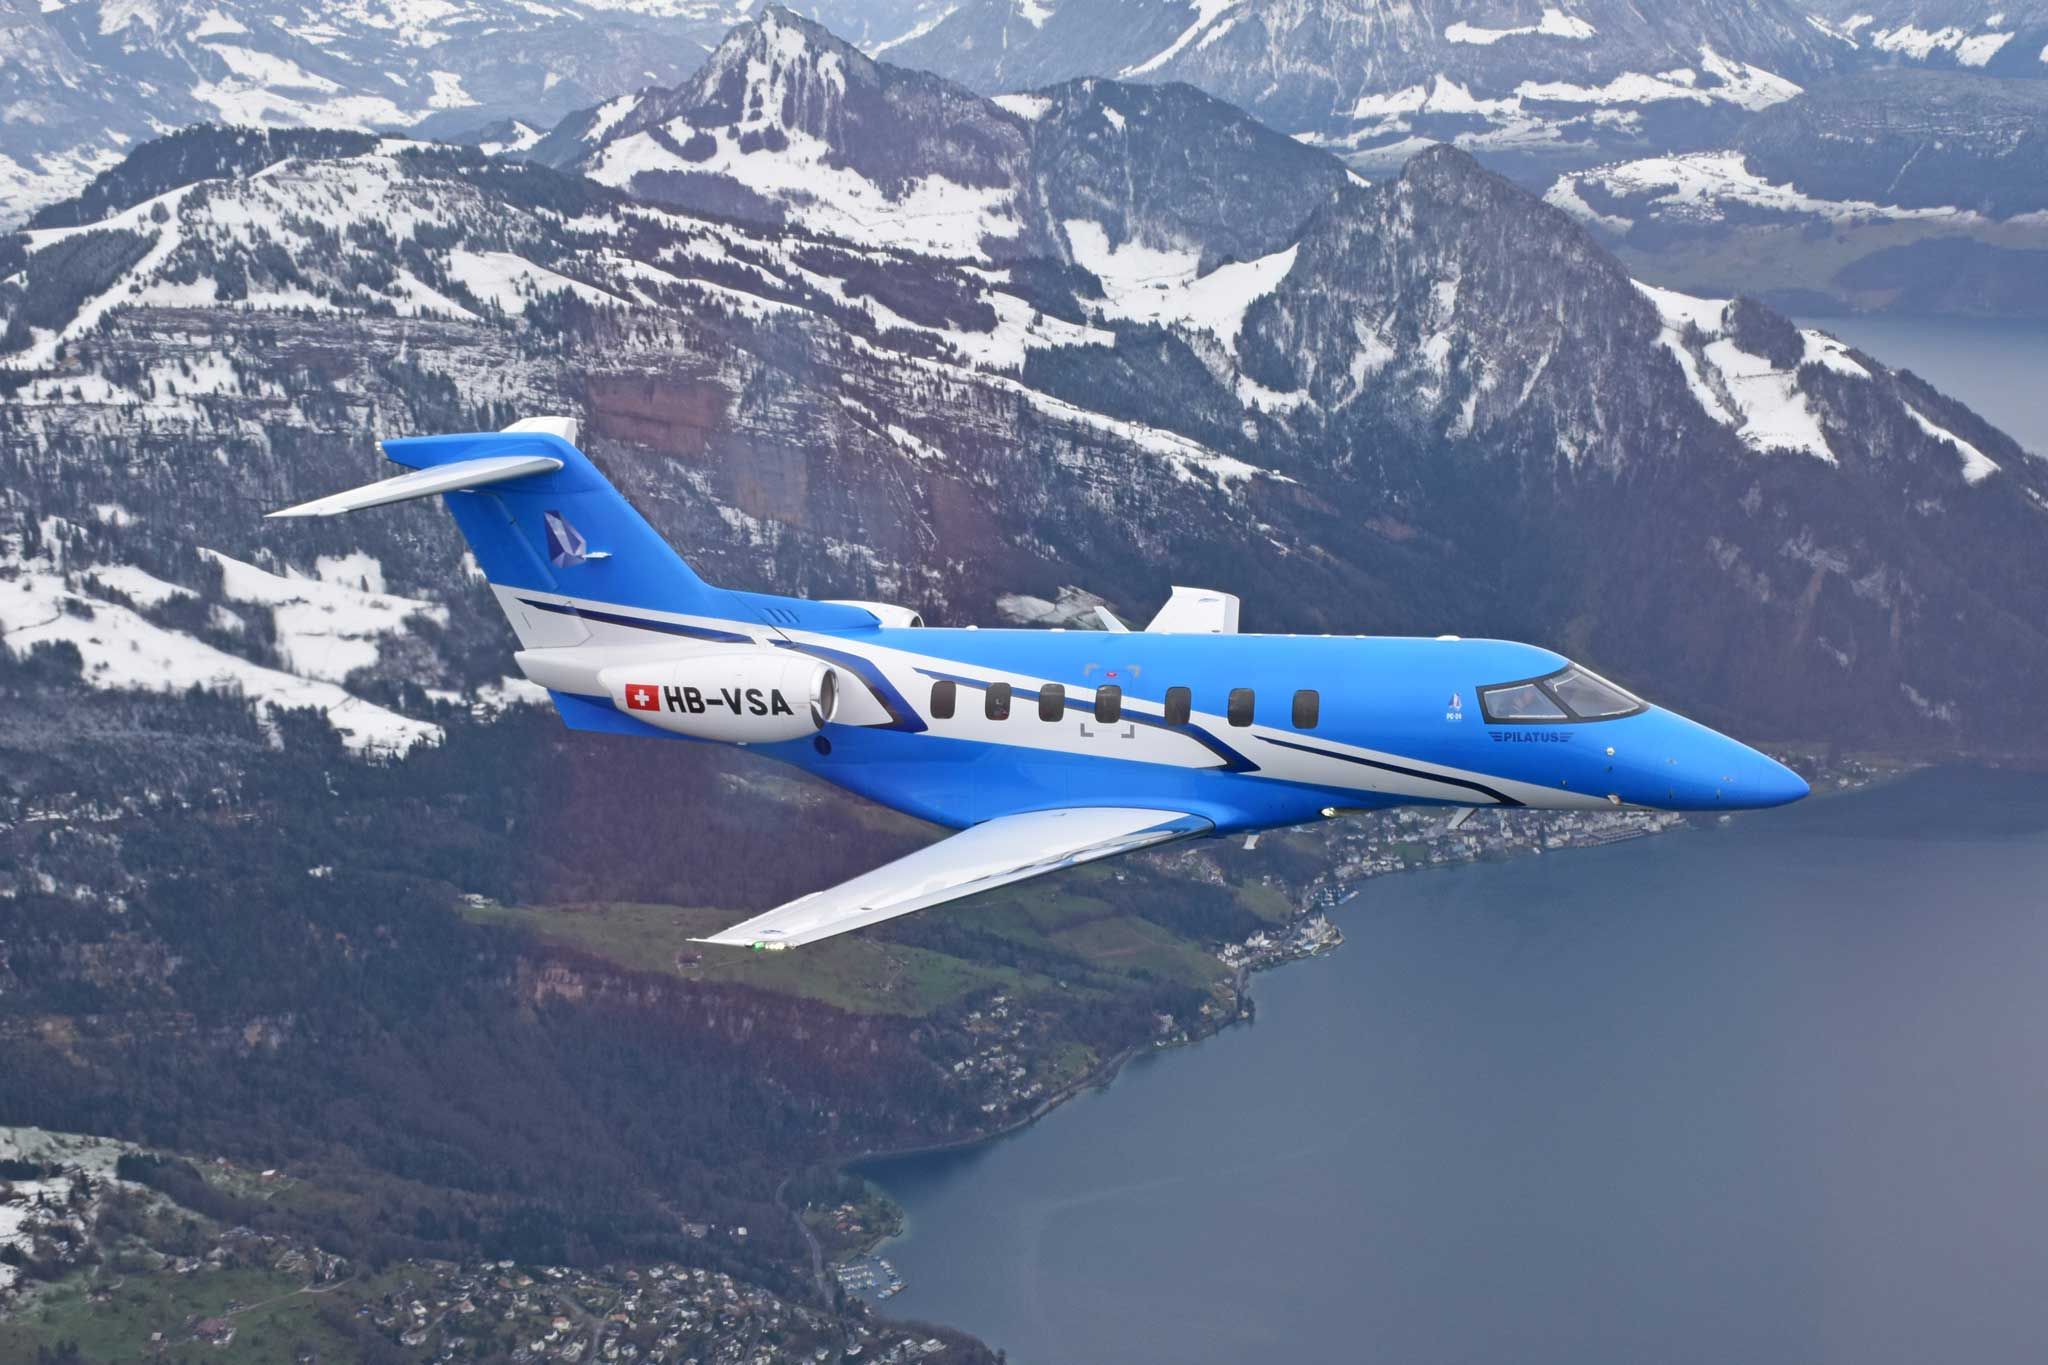 Third Pc 24 Prototype Makes First Flight Business